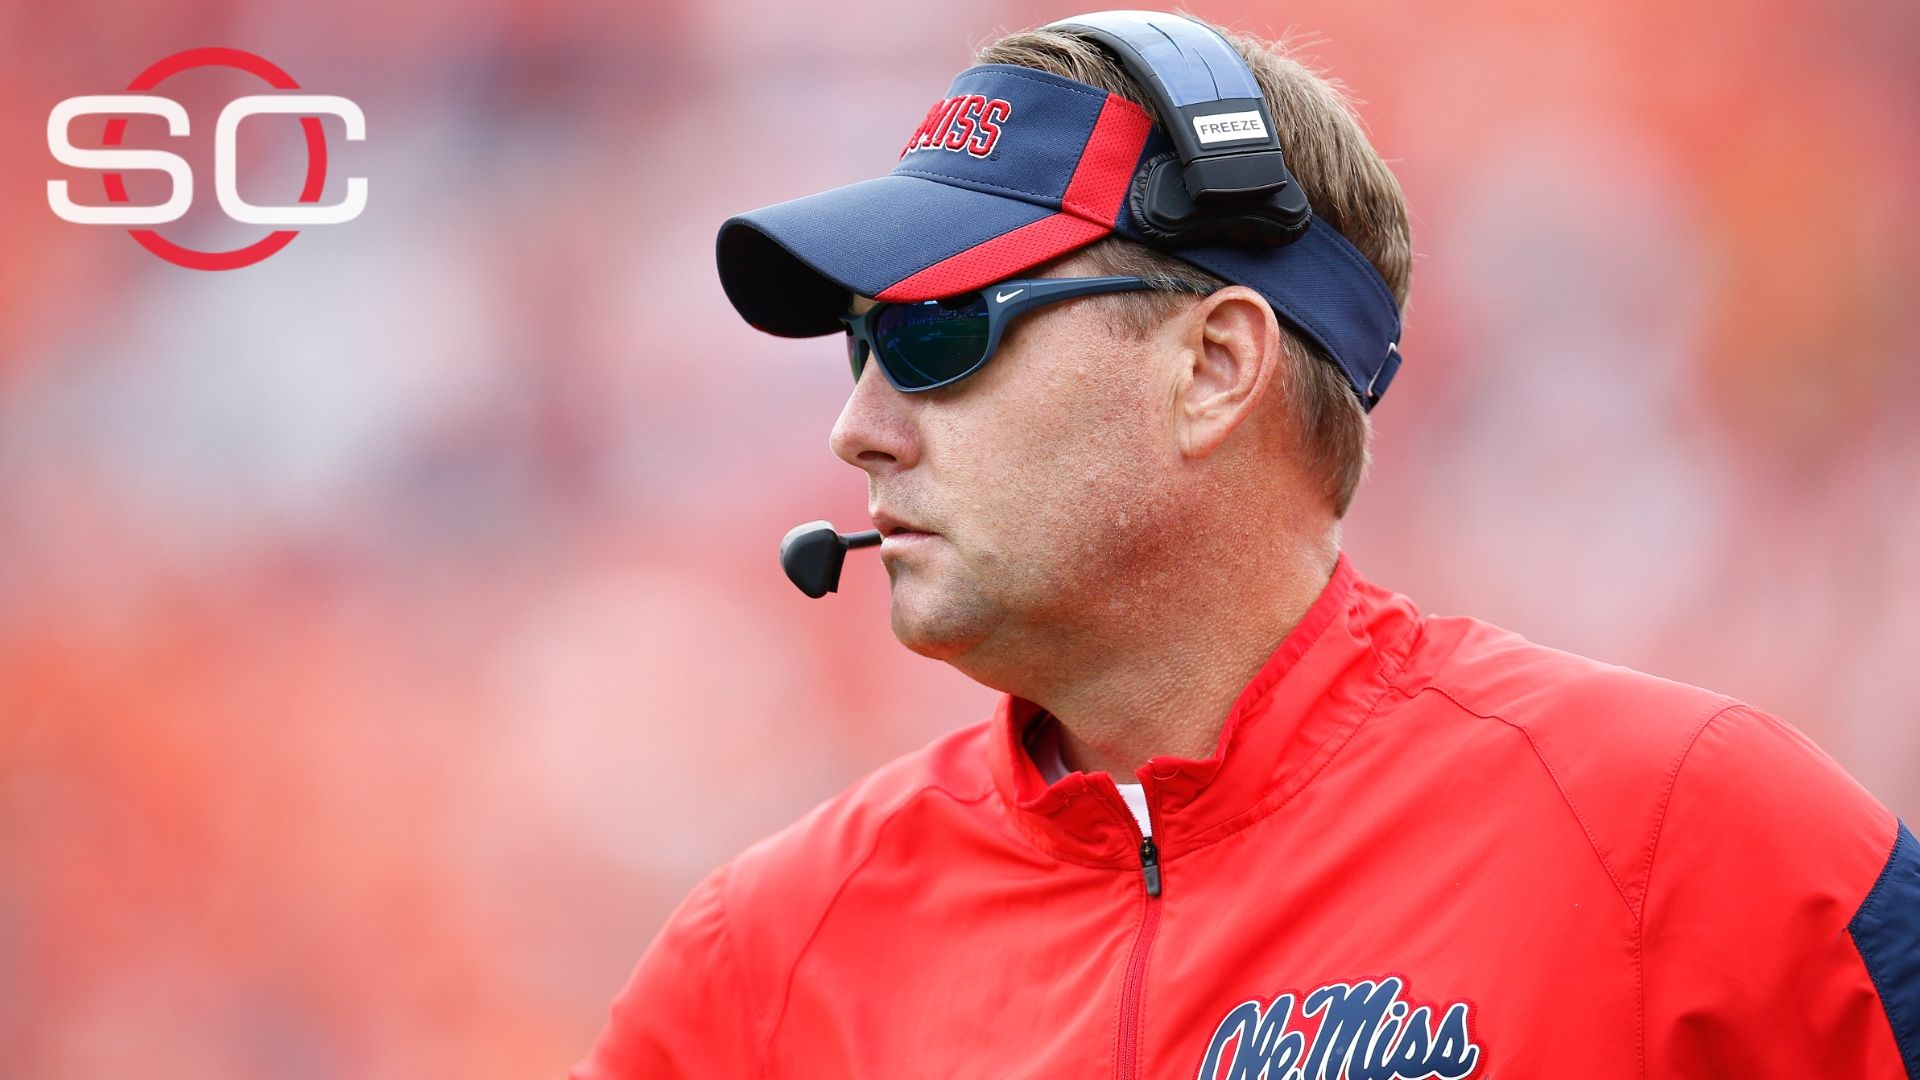 https://secure.espncdn.com/combiner/i?img=/media/motion/2016/0210/dm_160210_ncf_ole_miss_football_violations/dm_160210_ncf_ole_miss_football_violations.jpg